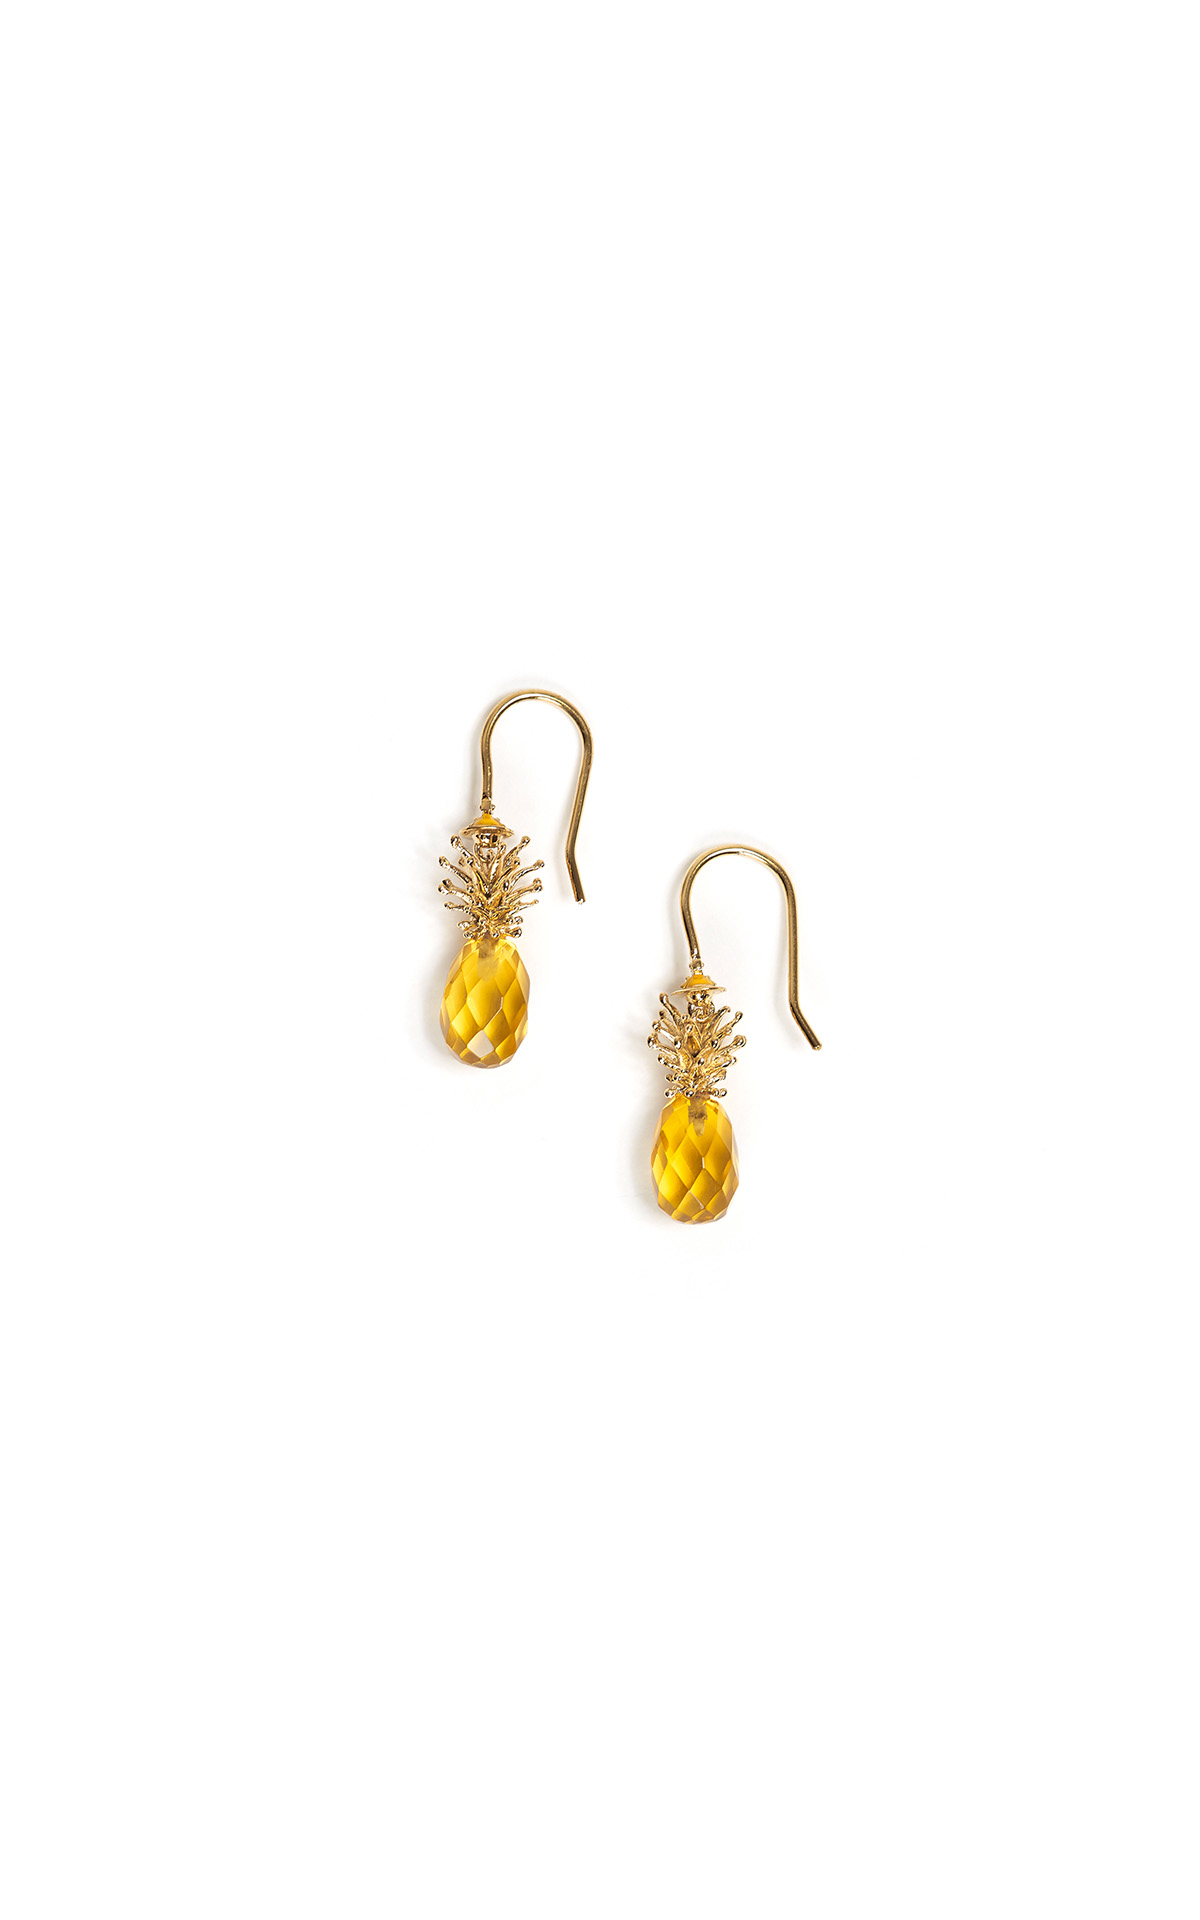 Vivienne Westwood Pineapple earrings from Bicester Village